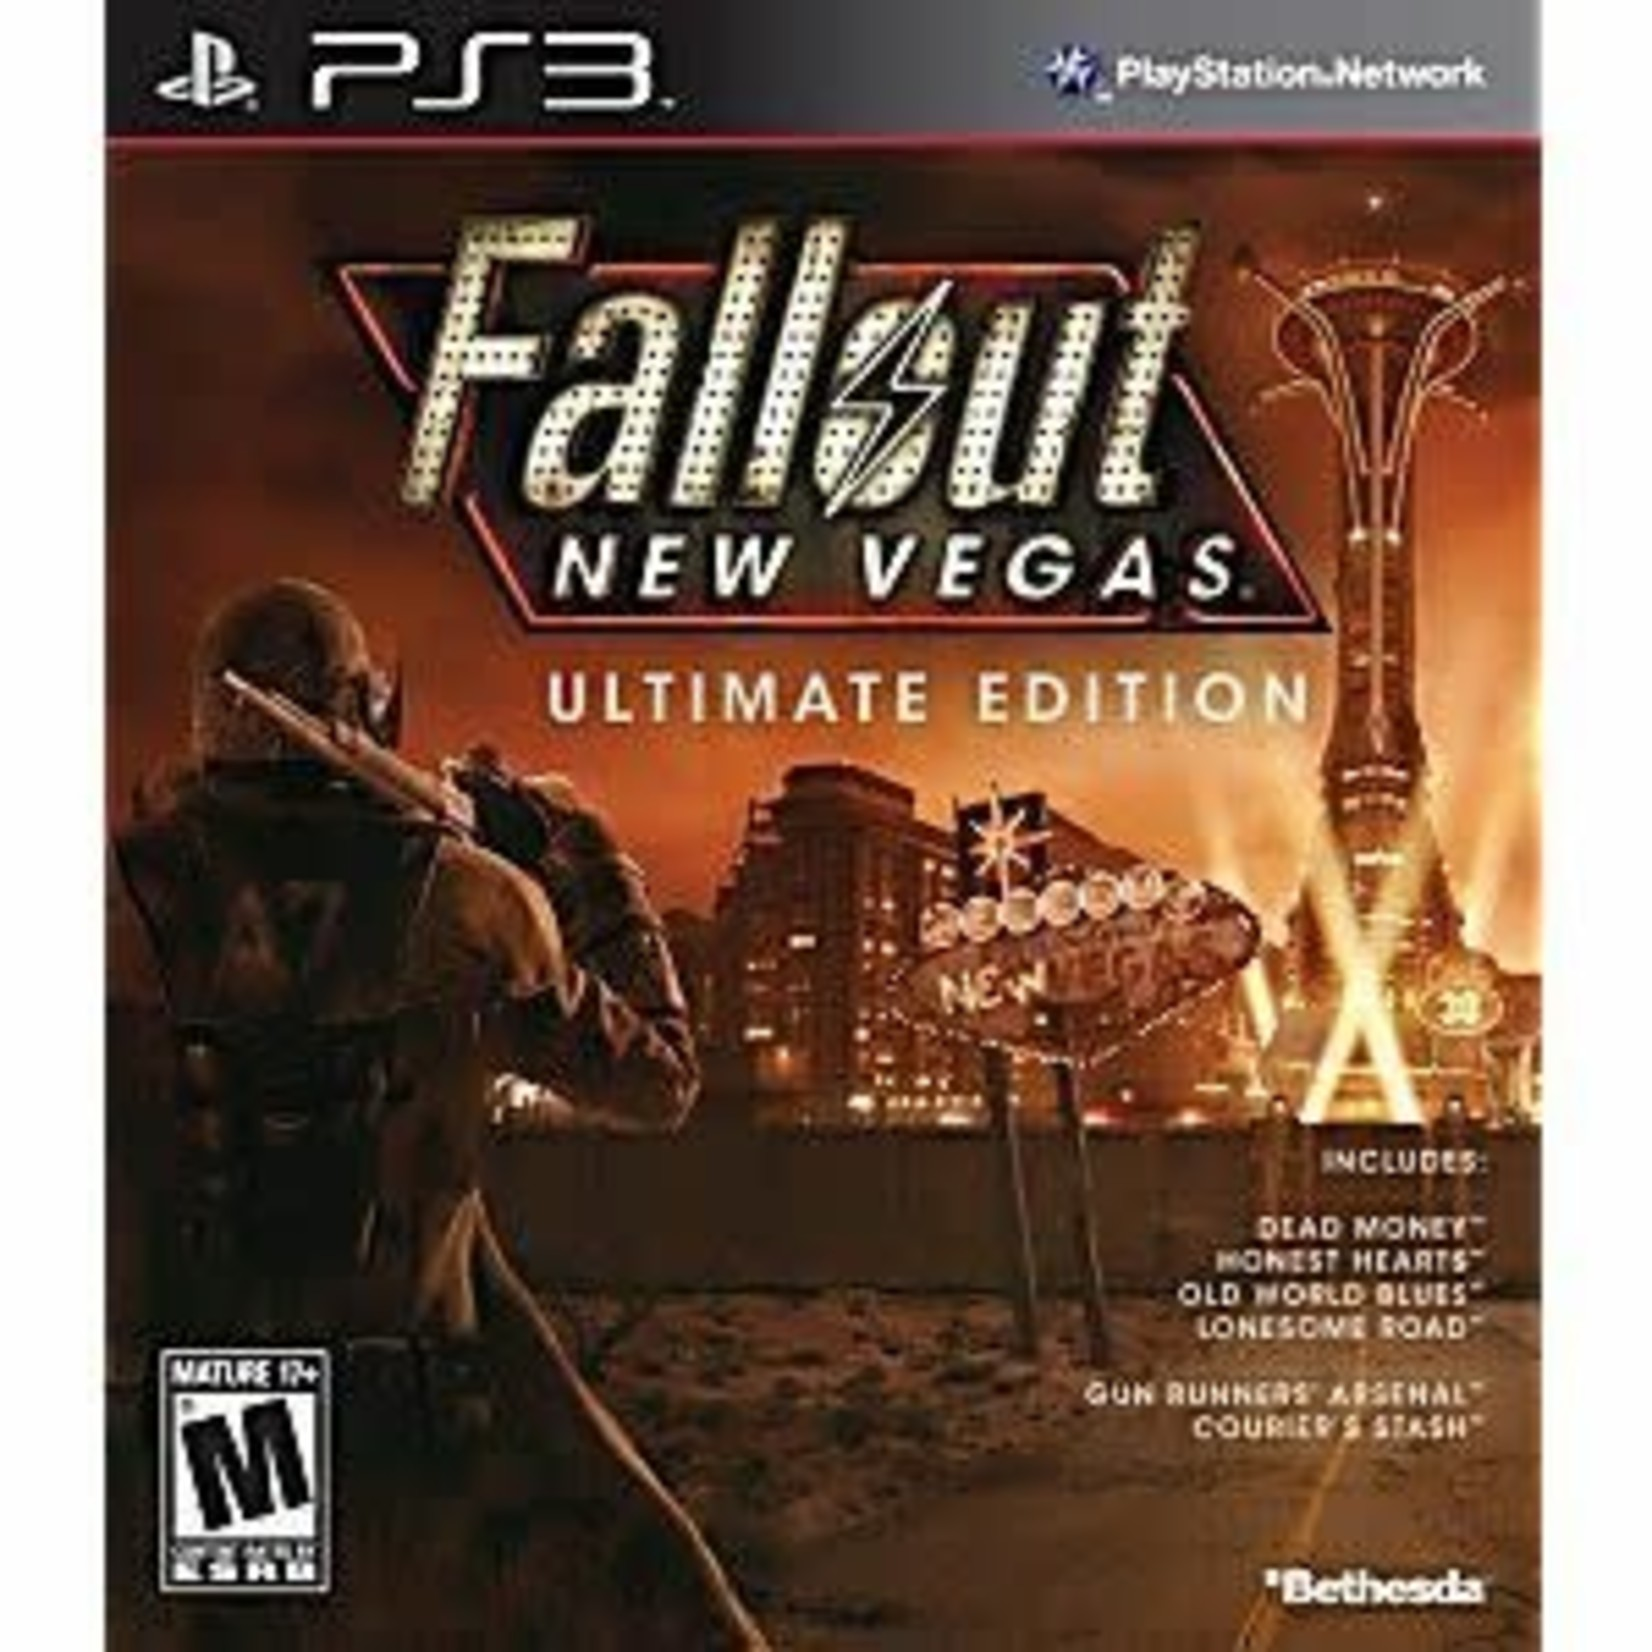 PS3-Fallout New Vegas: Ultimate Edition